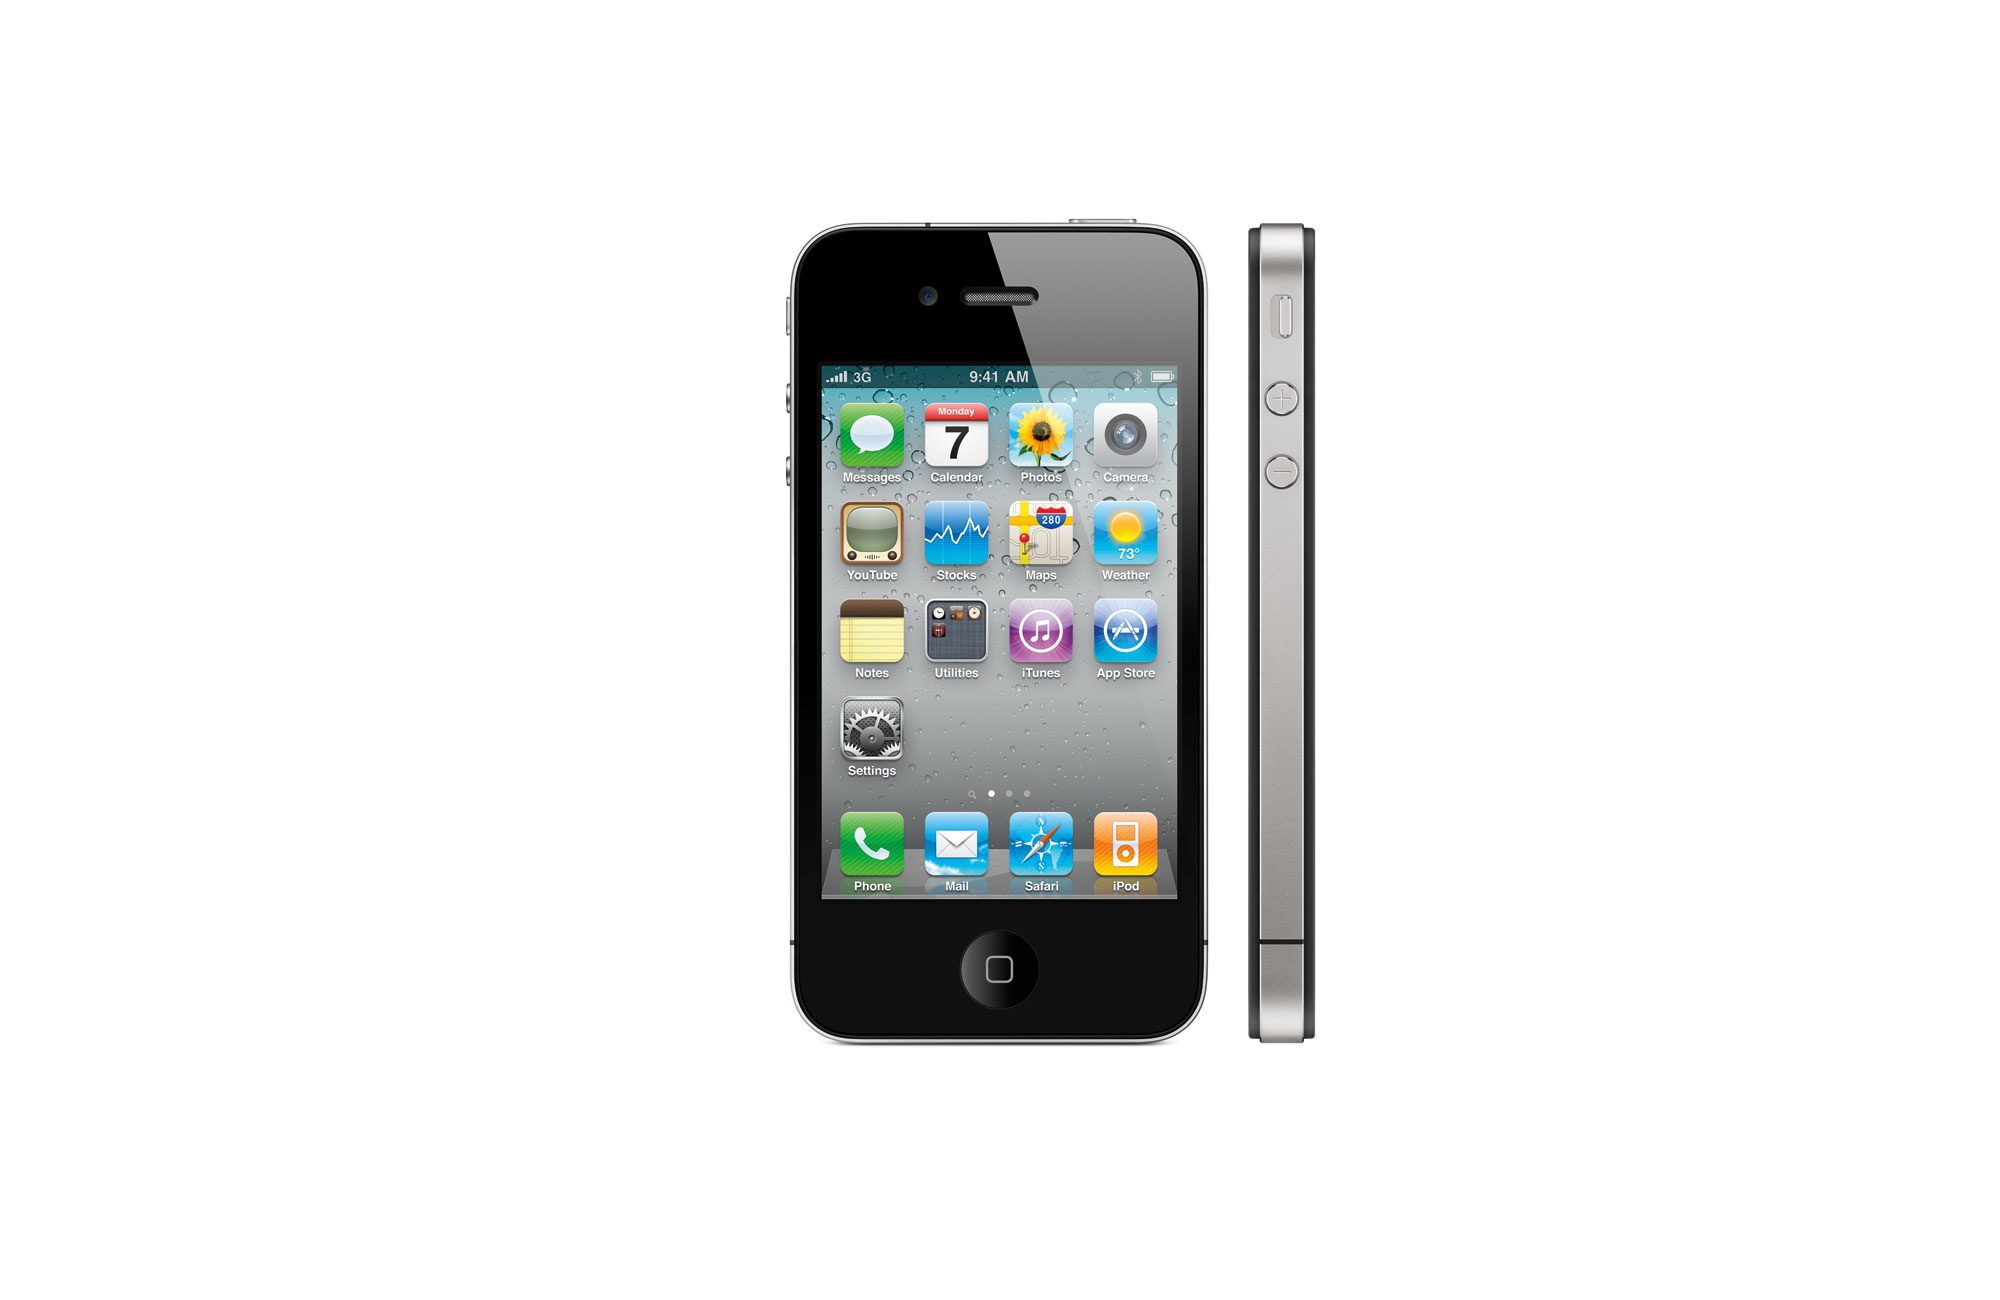 iphone 4 made in korea alt om data datatid techlife. Black Bedroom Furniture Sets. Home Design Ideas